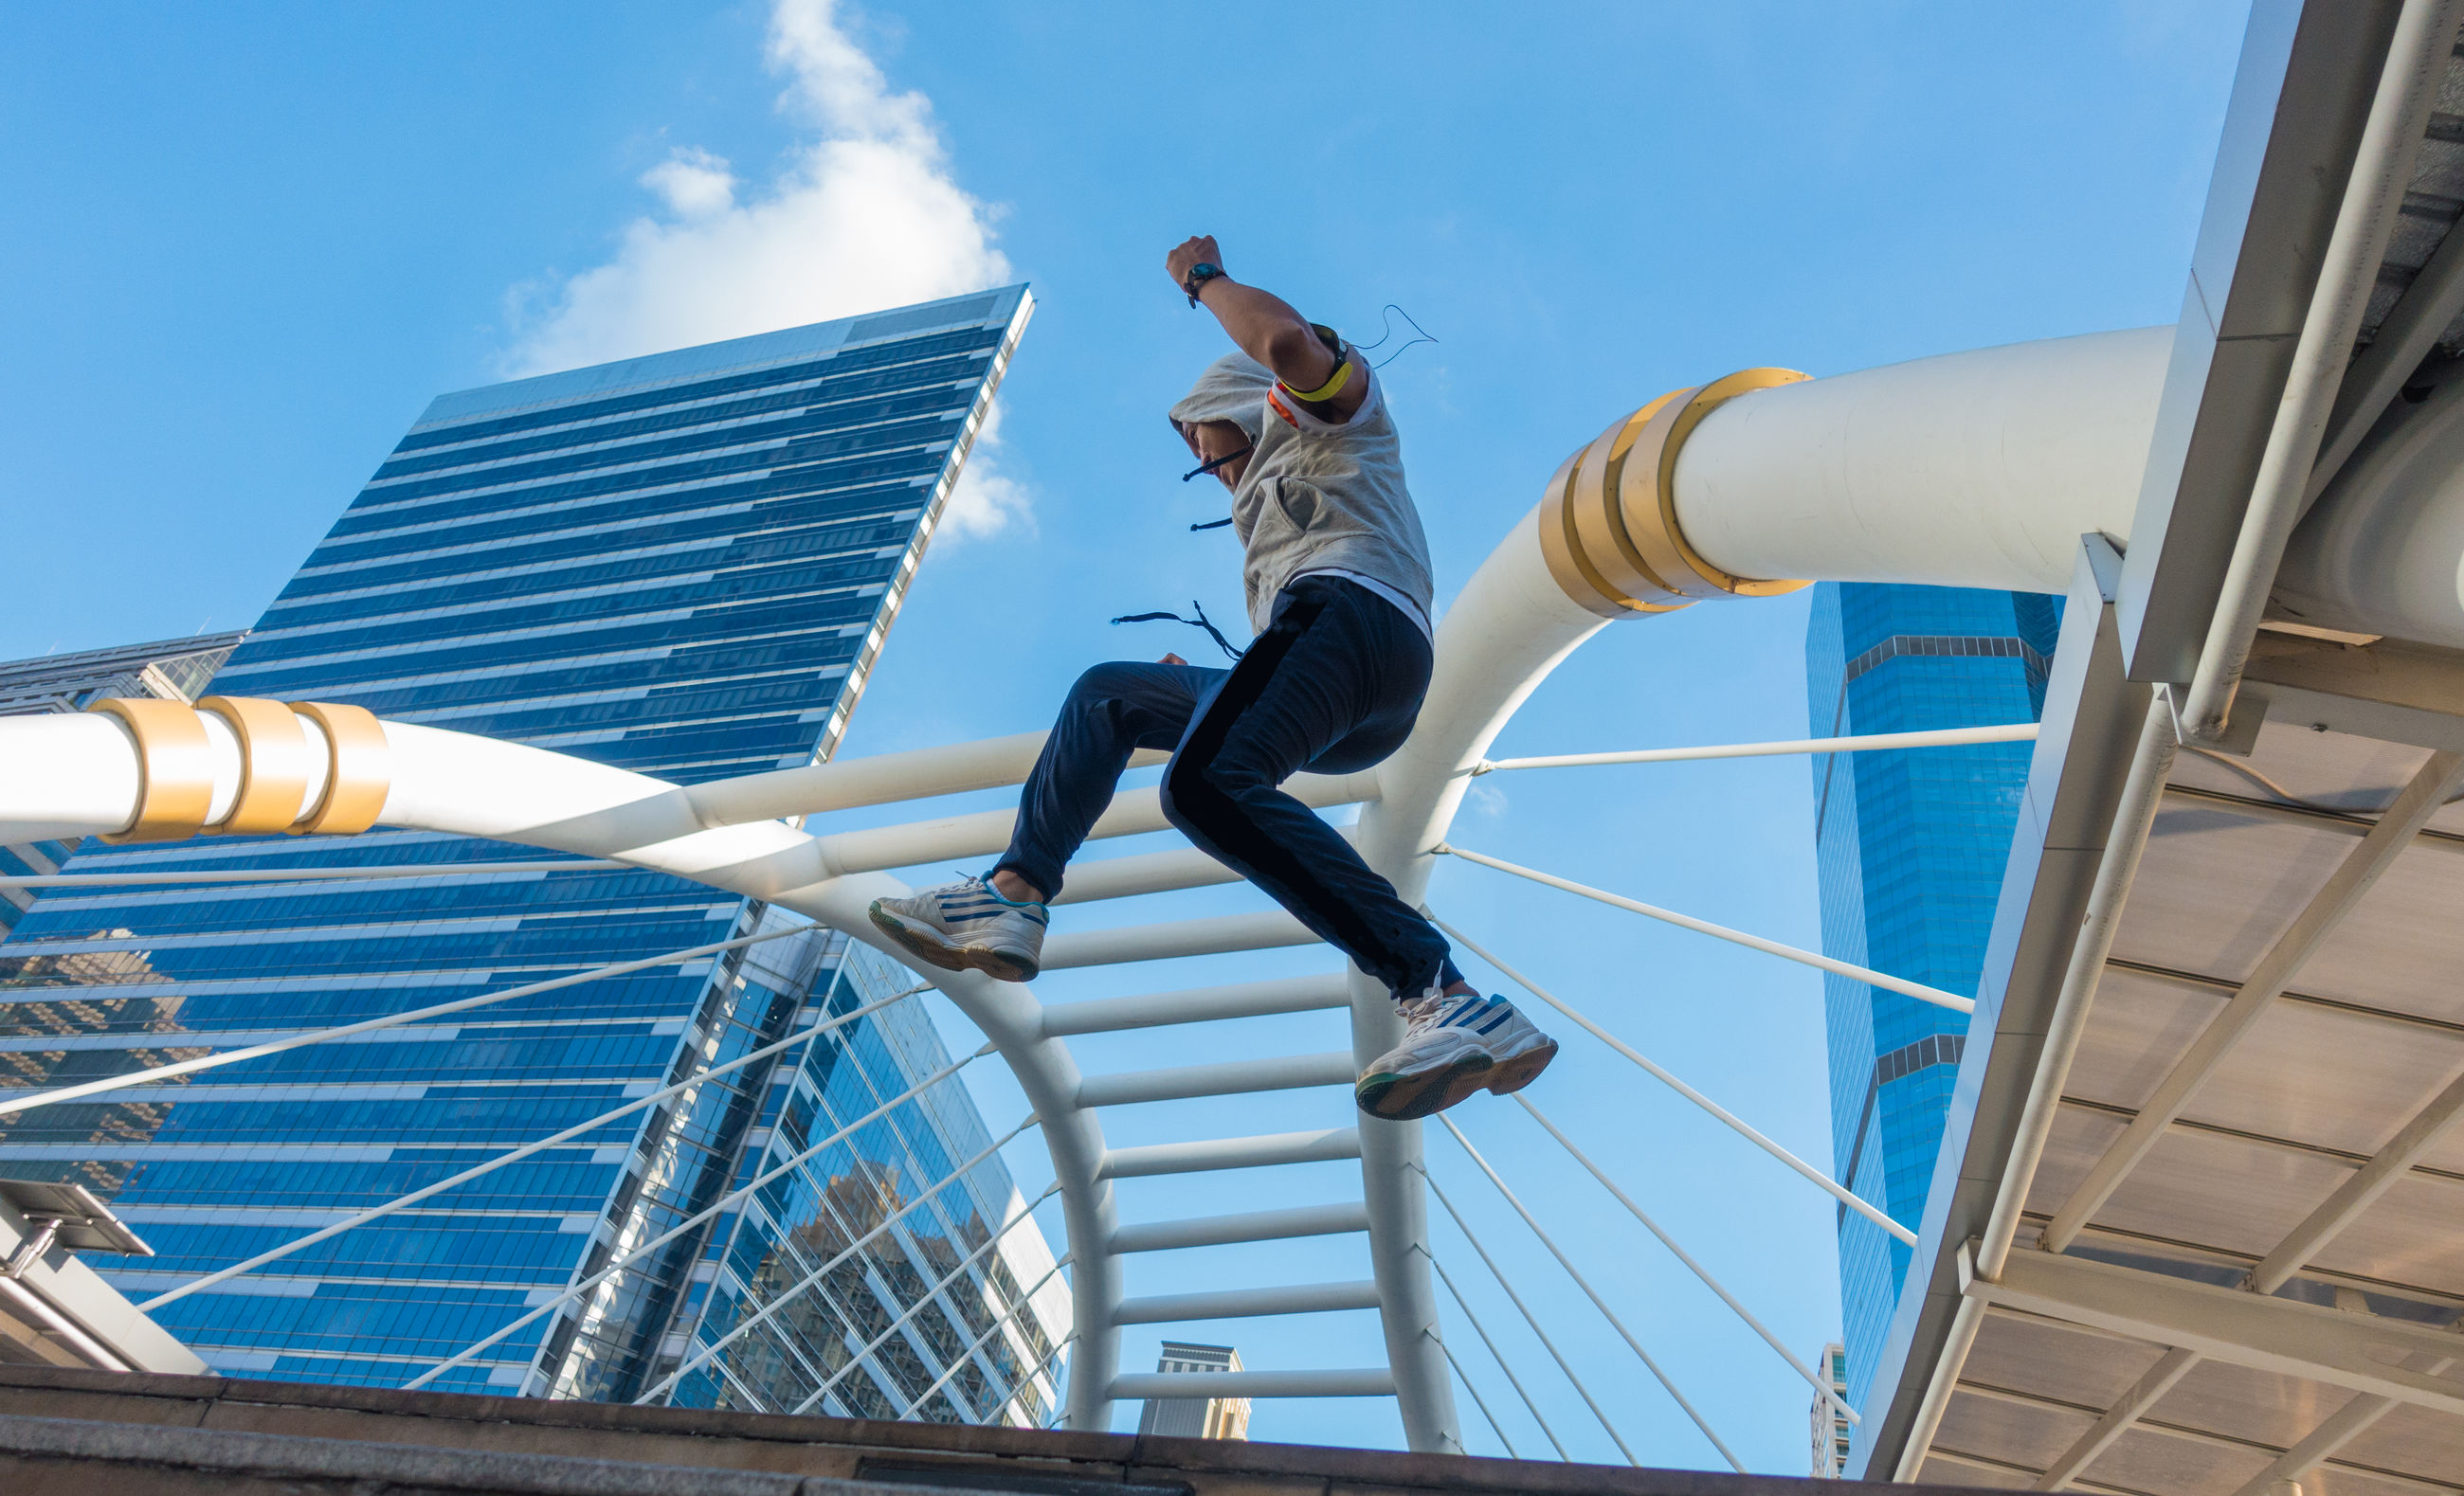 Low angle view of man jumping on steps against blue sky